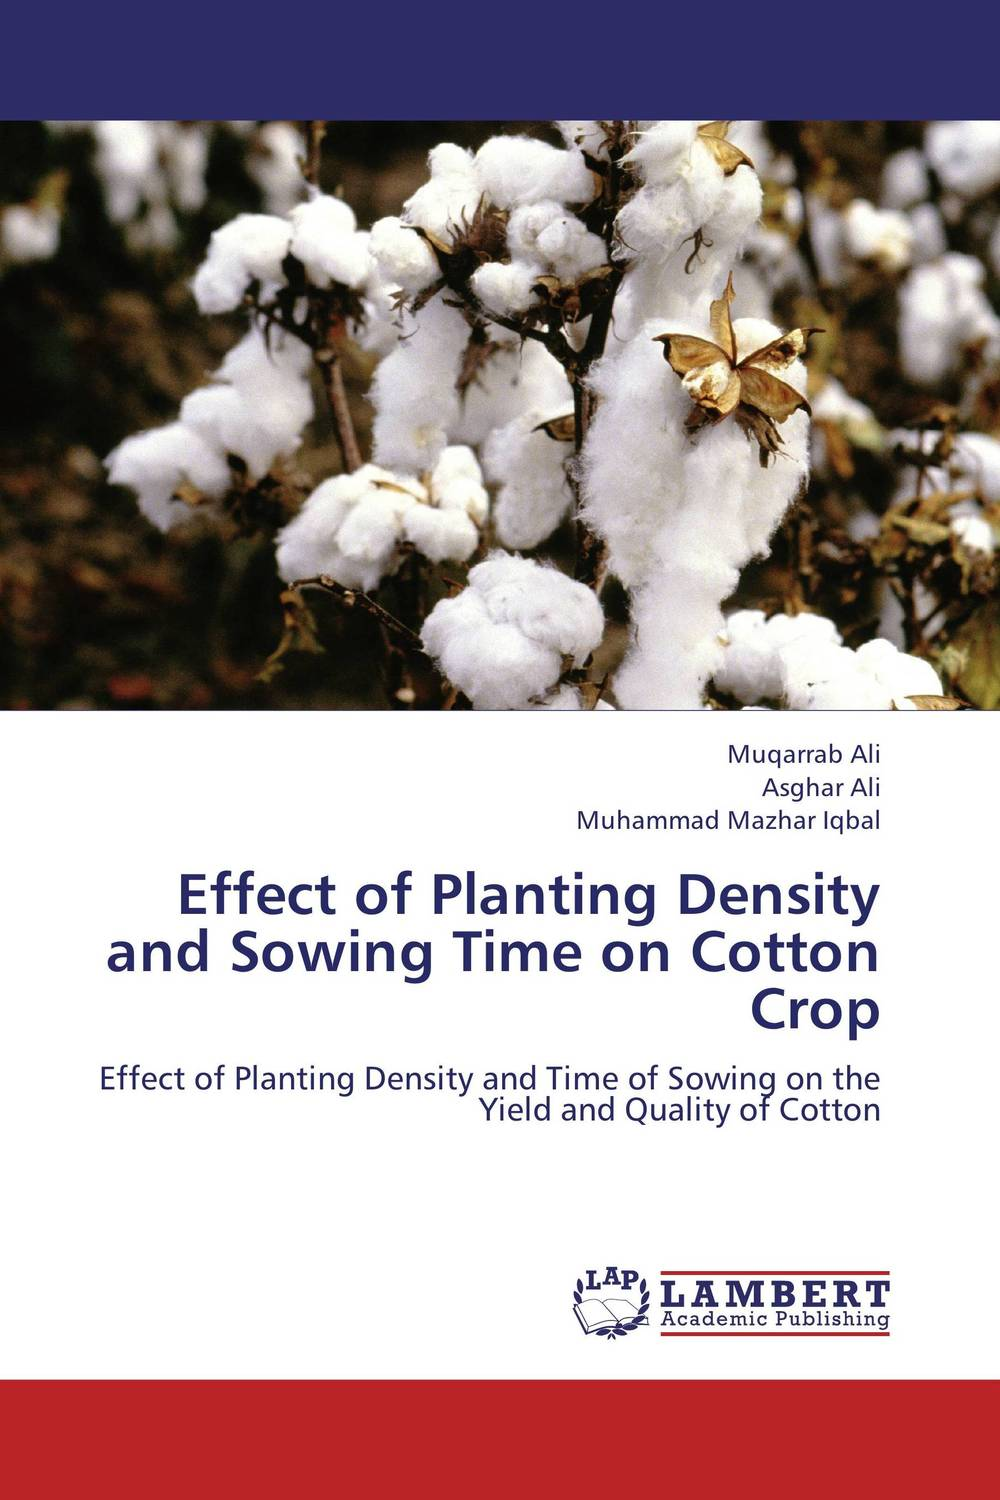 Effect of Planting Density and Sowing Time on  Cotton Crop vishal polara and pooja bhatt effect of node density and transmission range on zrp